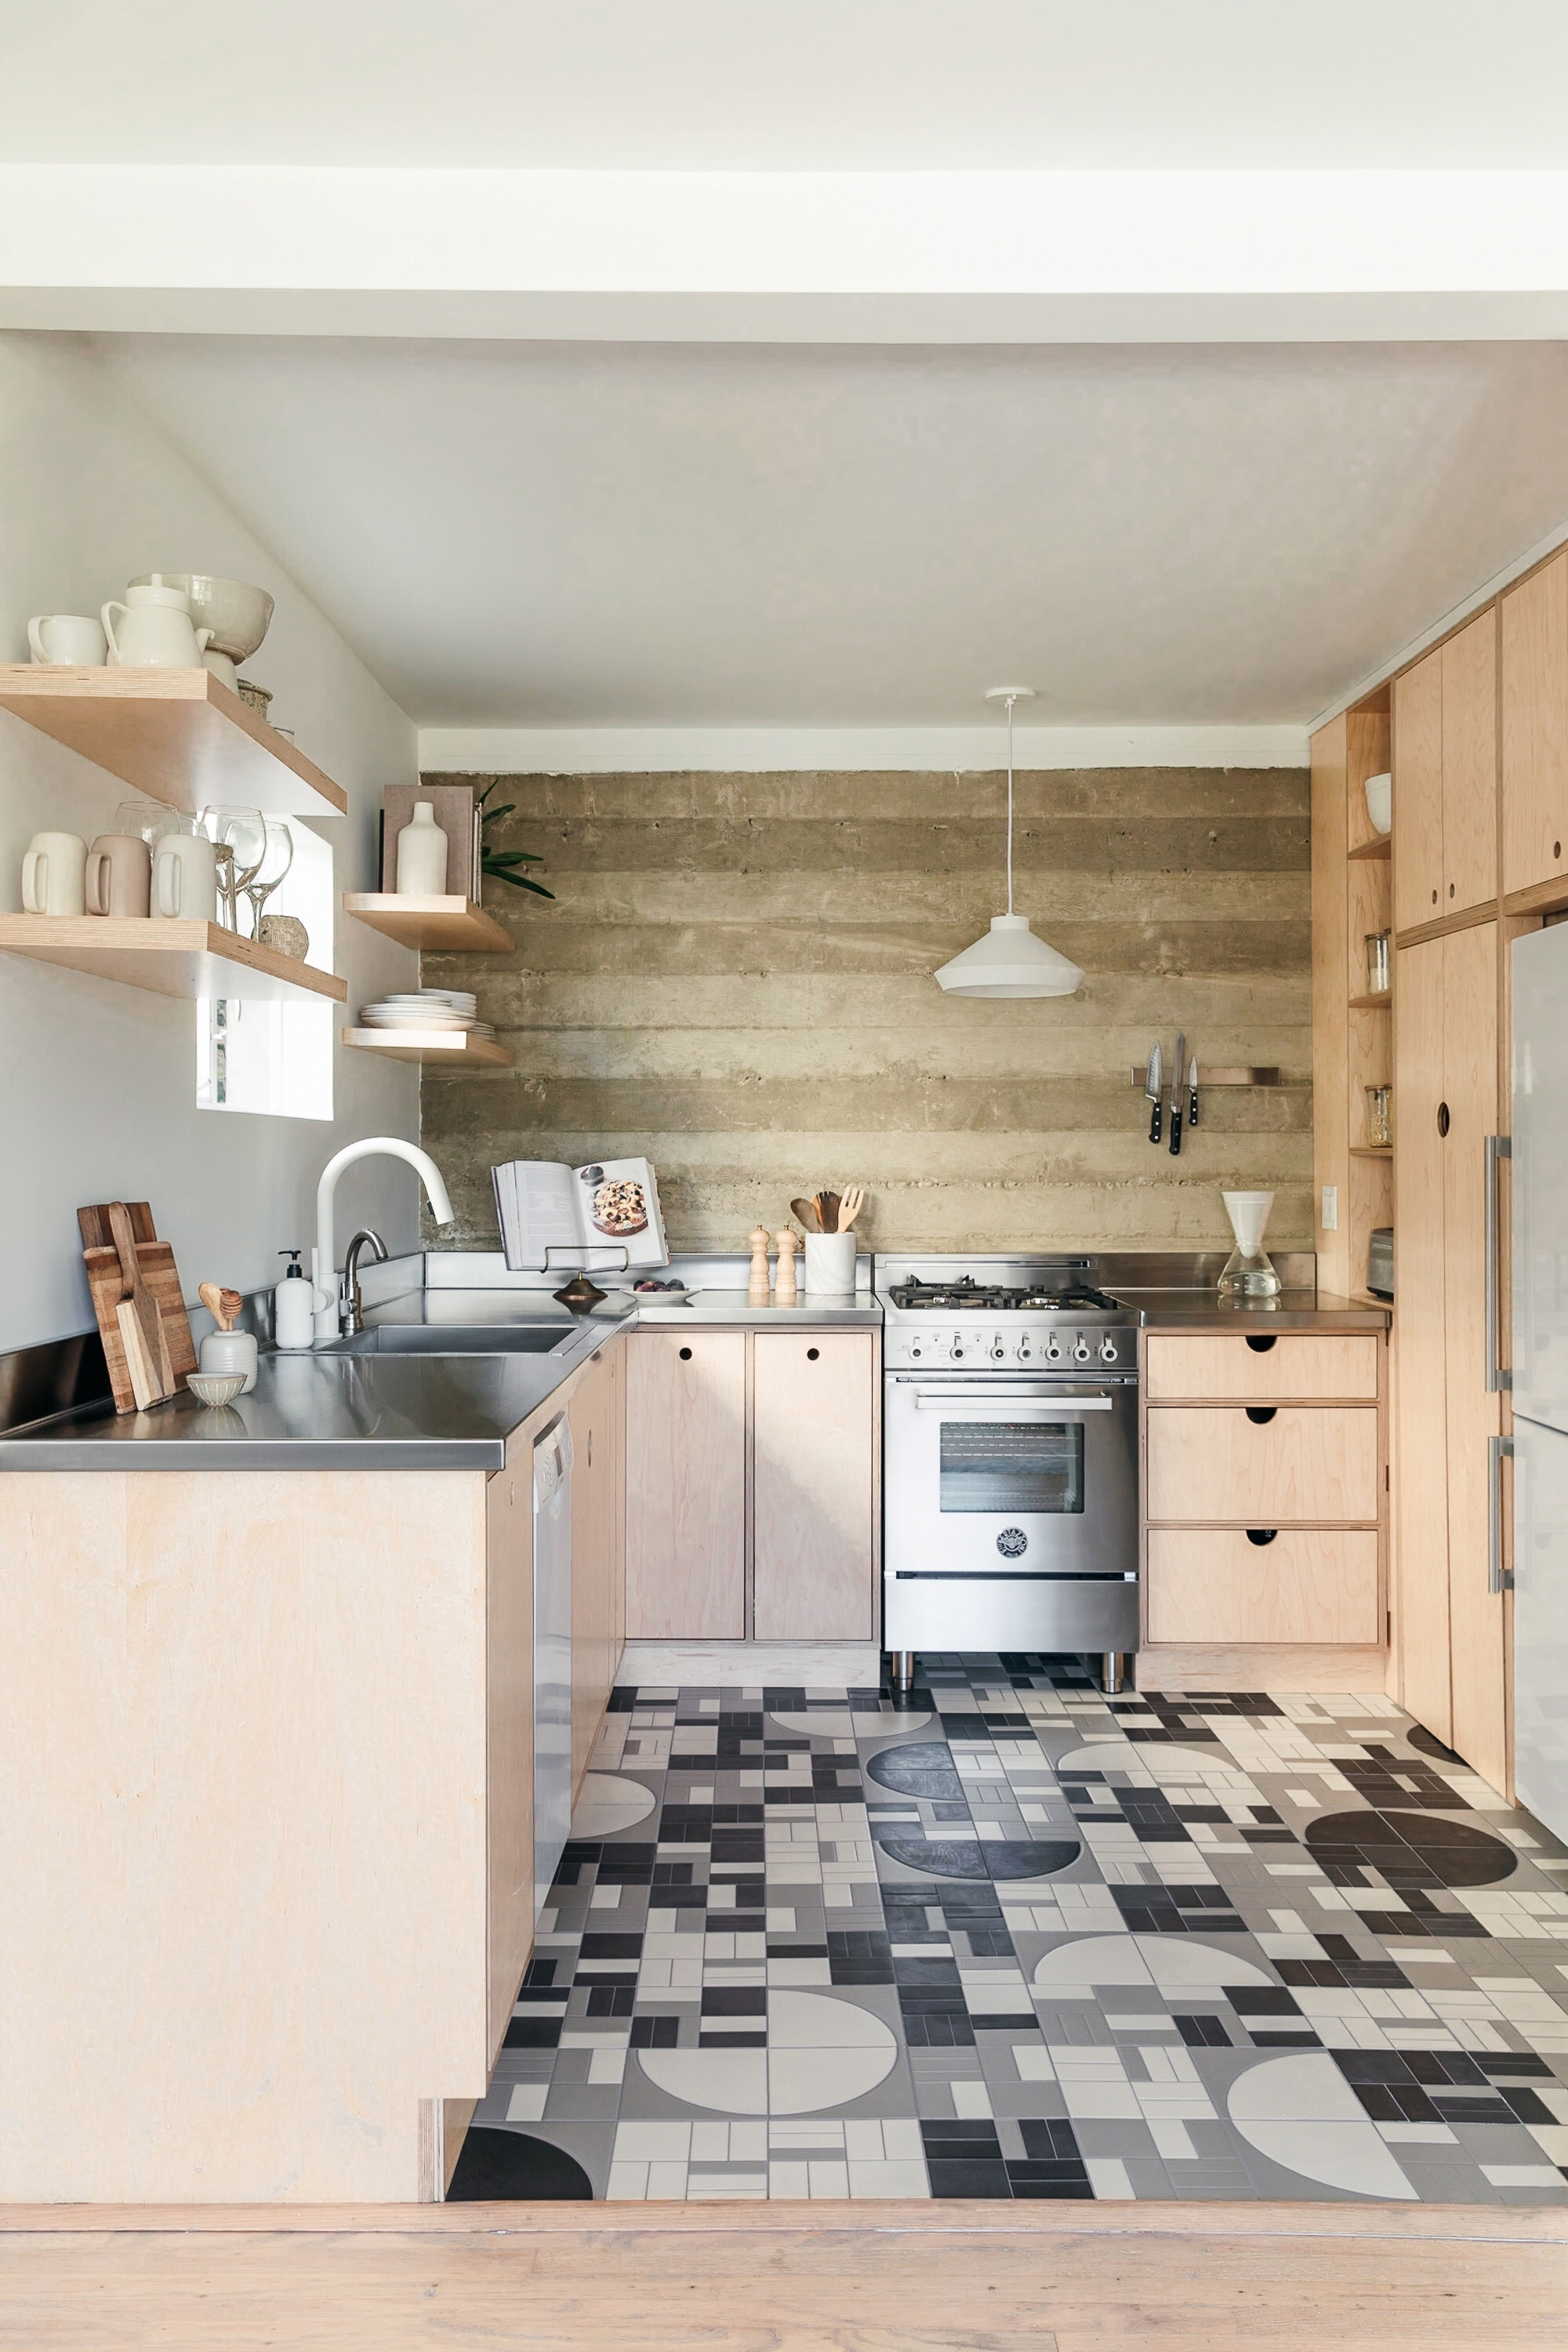 2018_Q4_image_hi_res_monica_wang_rights_influencer_anne_sage_designer_jess_taylor_kitchen_floor_handpainted_agrarian_grange_fallow_full_FC-235169.jpg?mtime=20181108114404#asset:424893